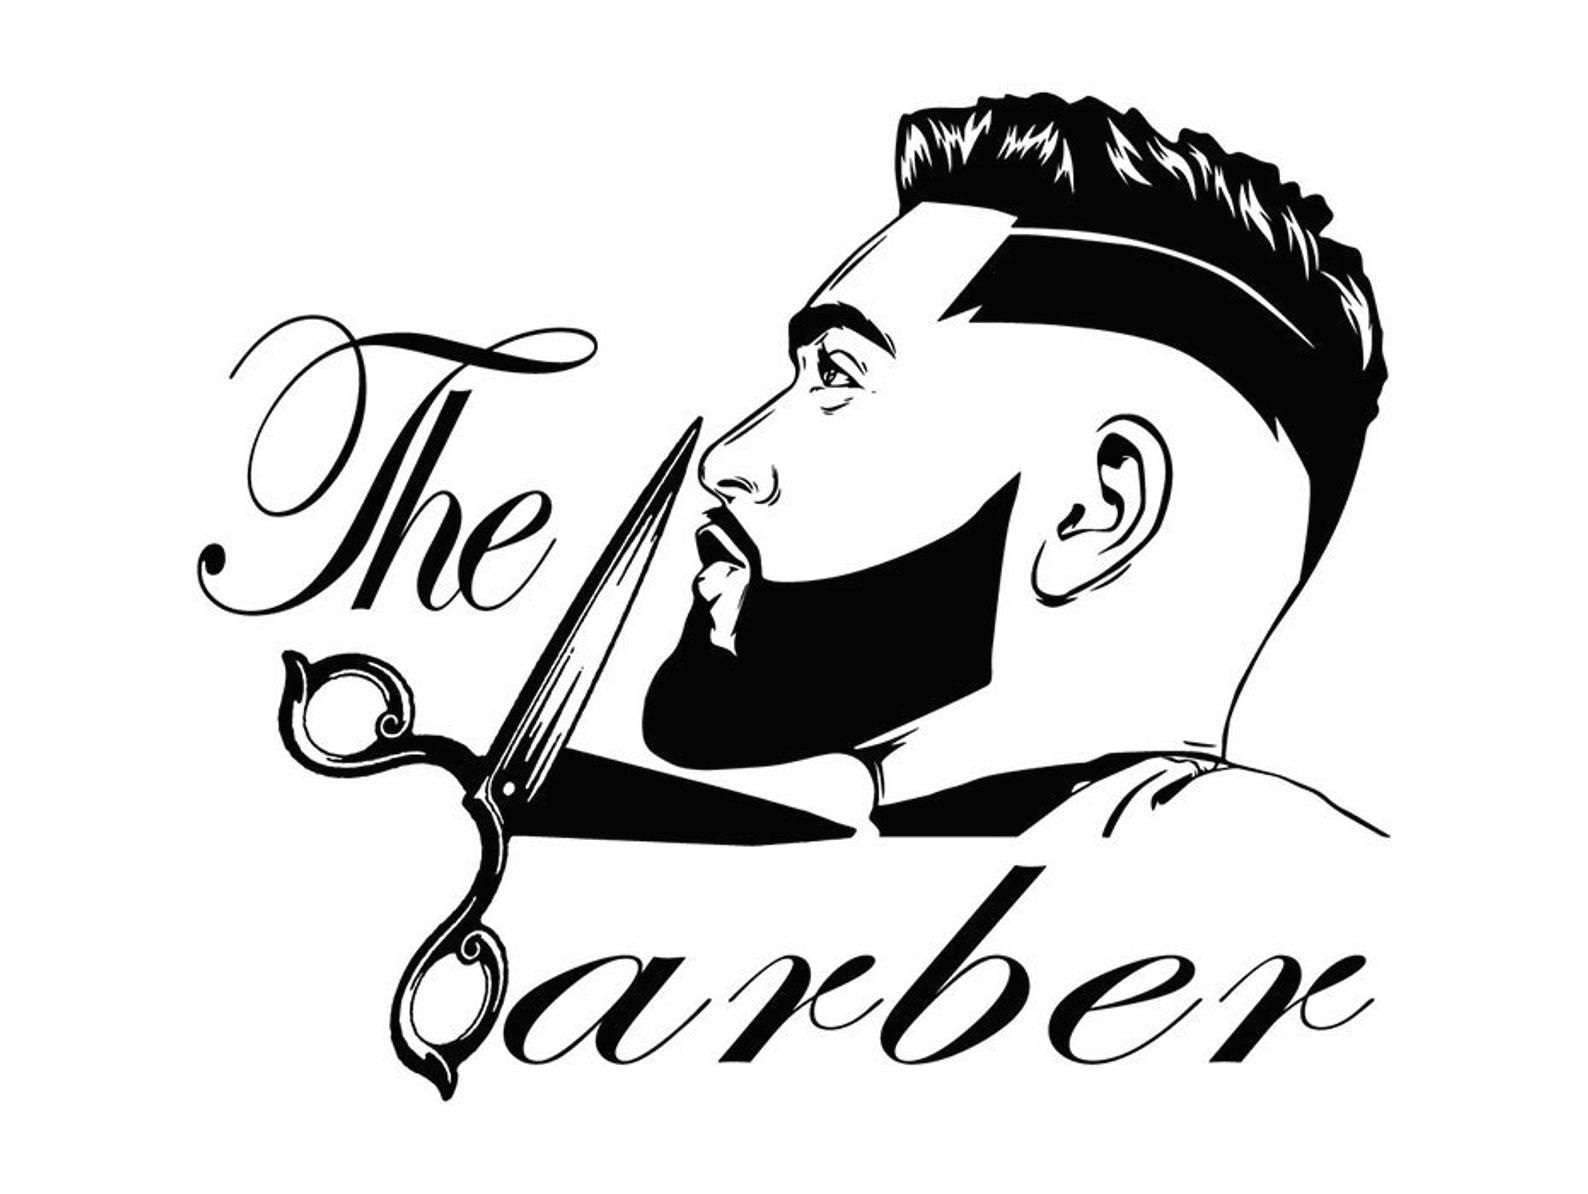 Beard Style Face Male Hairstyle Handsome Mustache Bearded Man Svg Eps Png Vector Clip Art Digit 1000 Beard Art Beard No Mustache Beard Styles